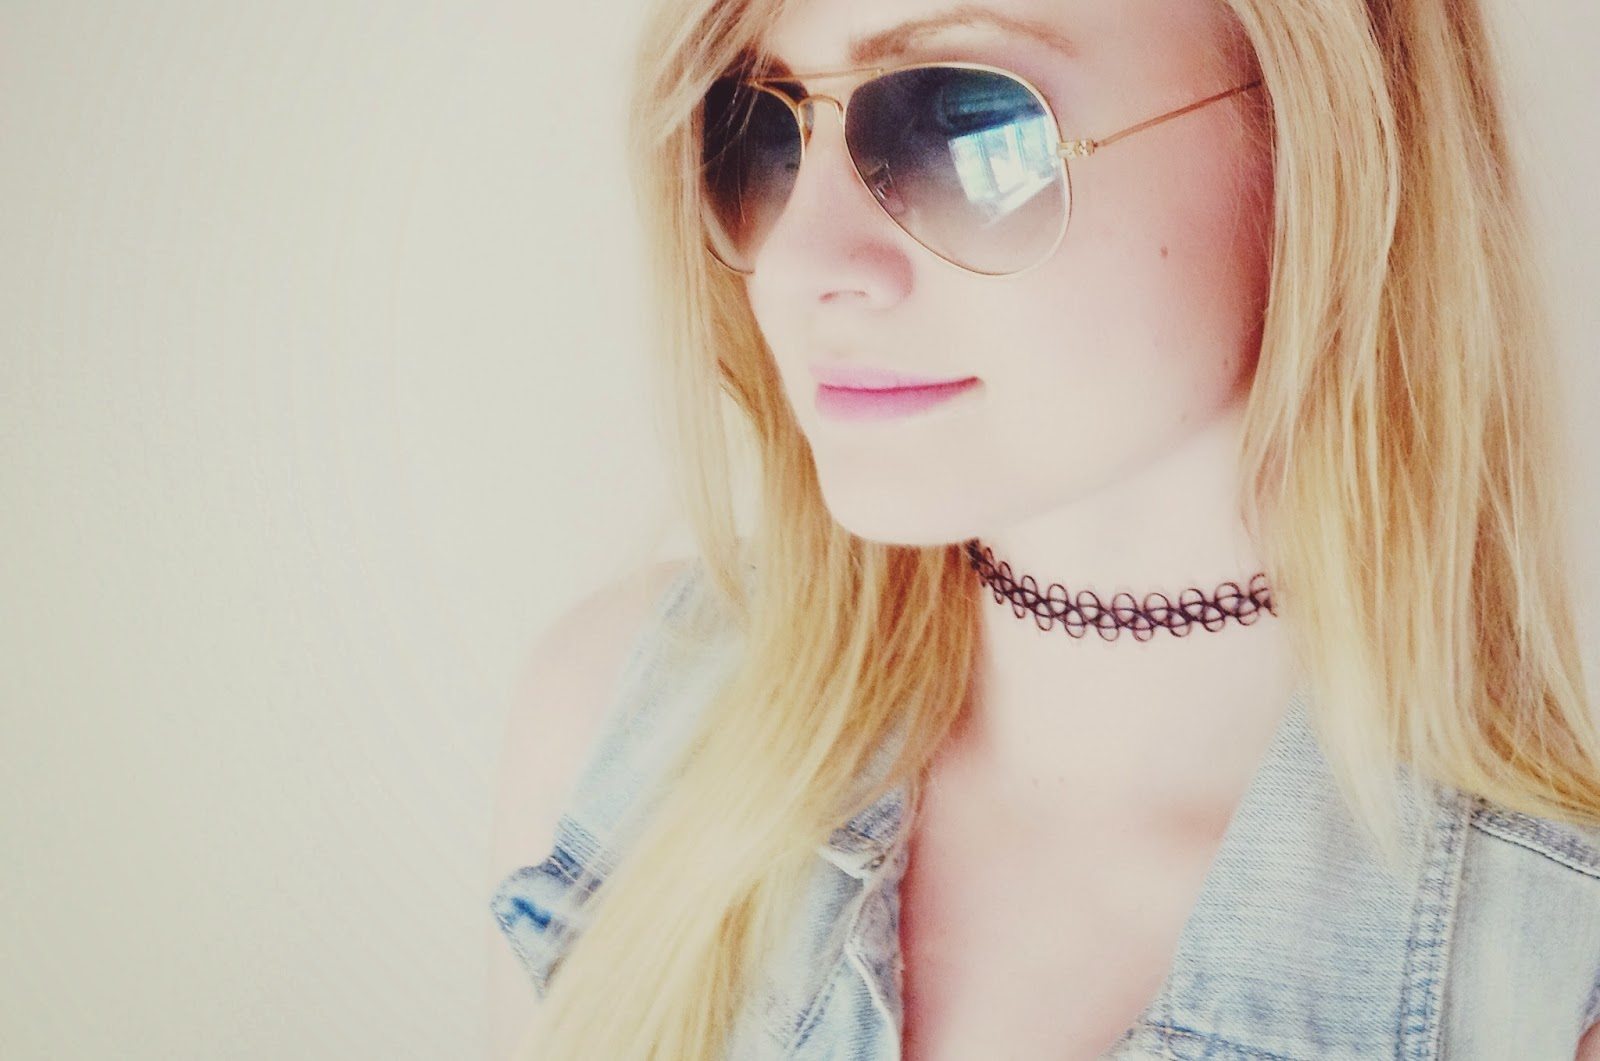 tattoo choker, 90s tattoo choker, vintage accessories, 90s trend